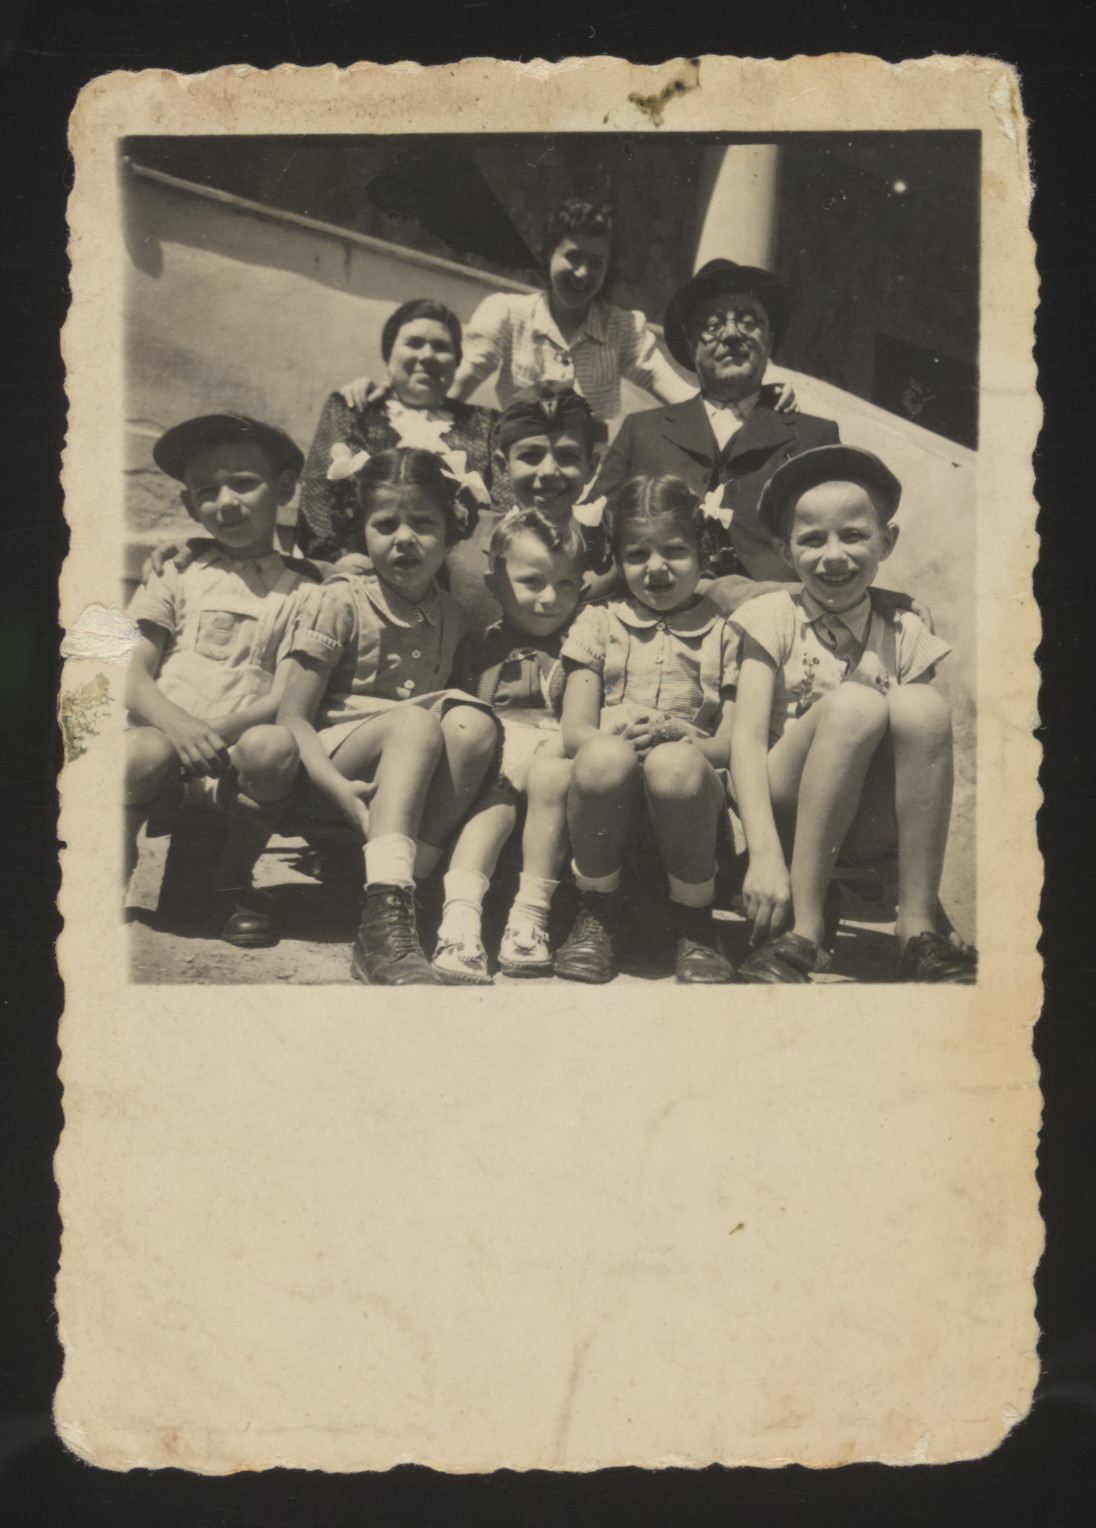 Twin sisters Yehudit and Lea pose with their maternal grandparents and cousins.  Their grandparents, Shmuel and Berta Engel, both perished in the Holocaust.